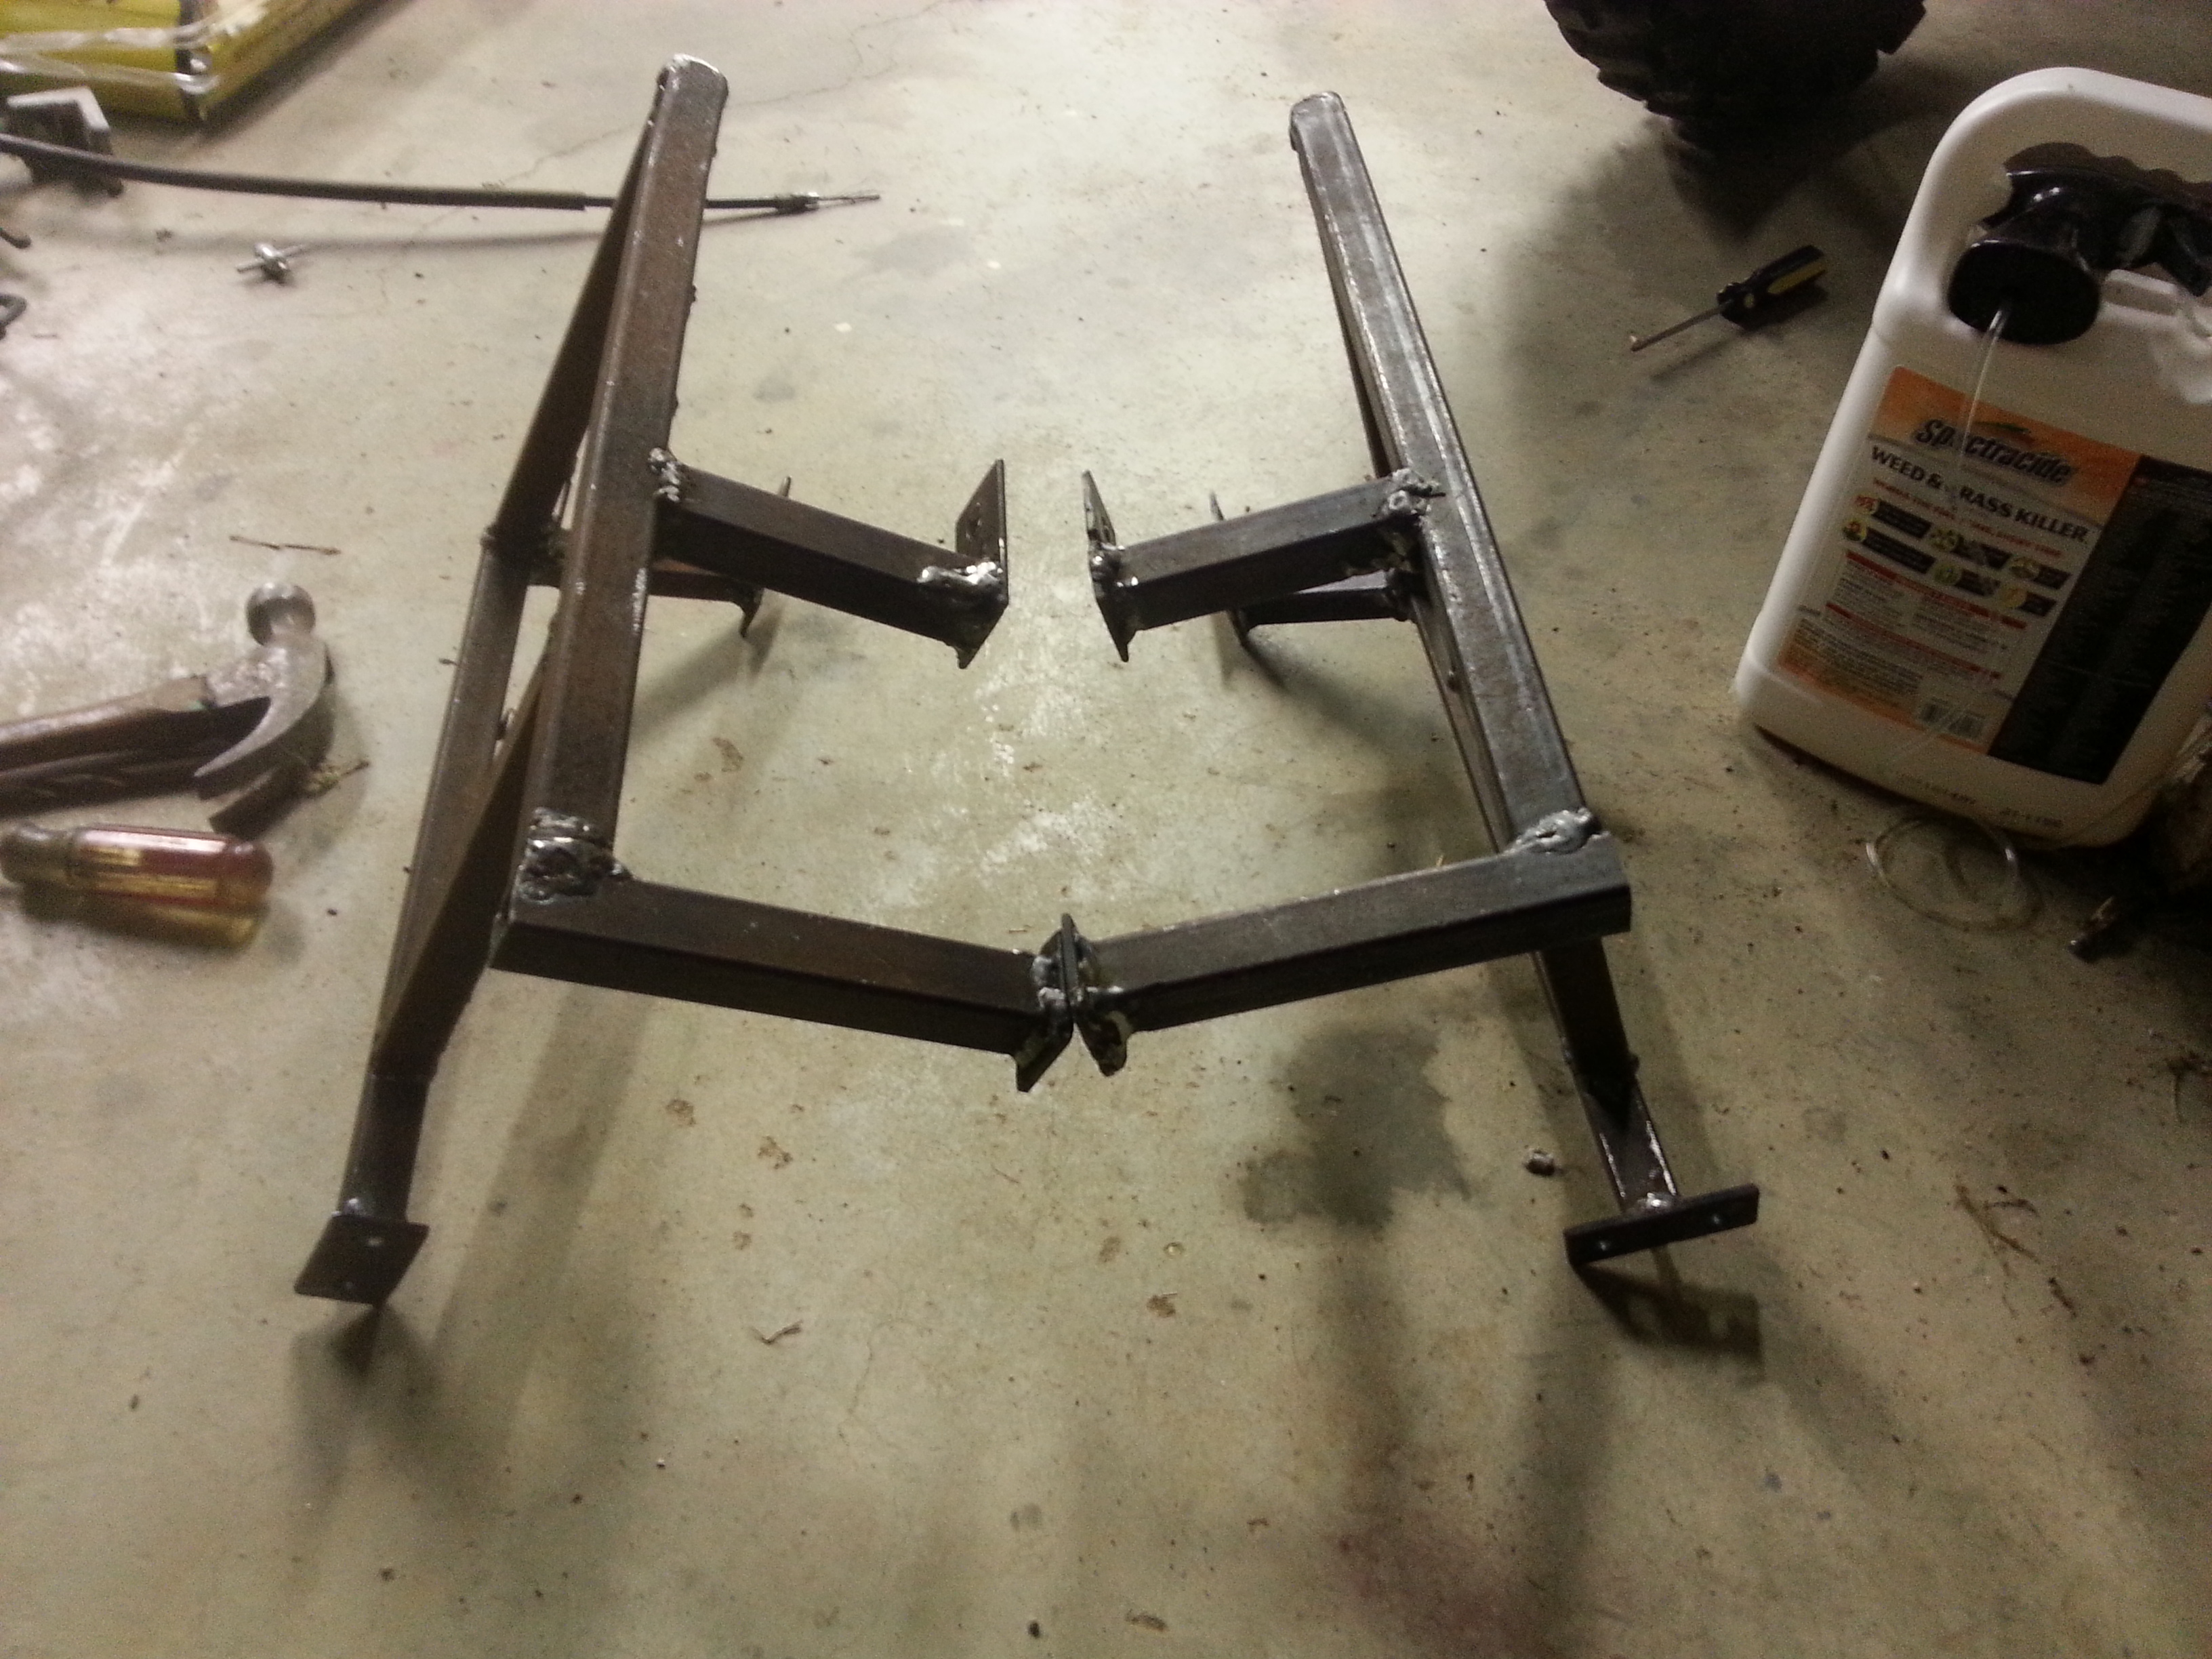 Left and right side racks before painting